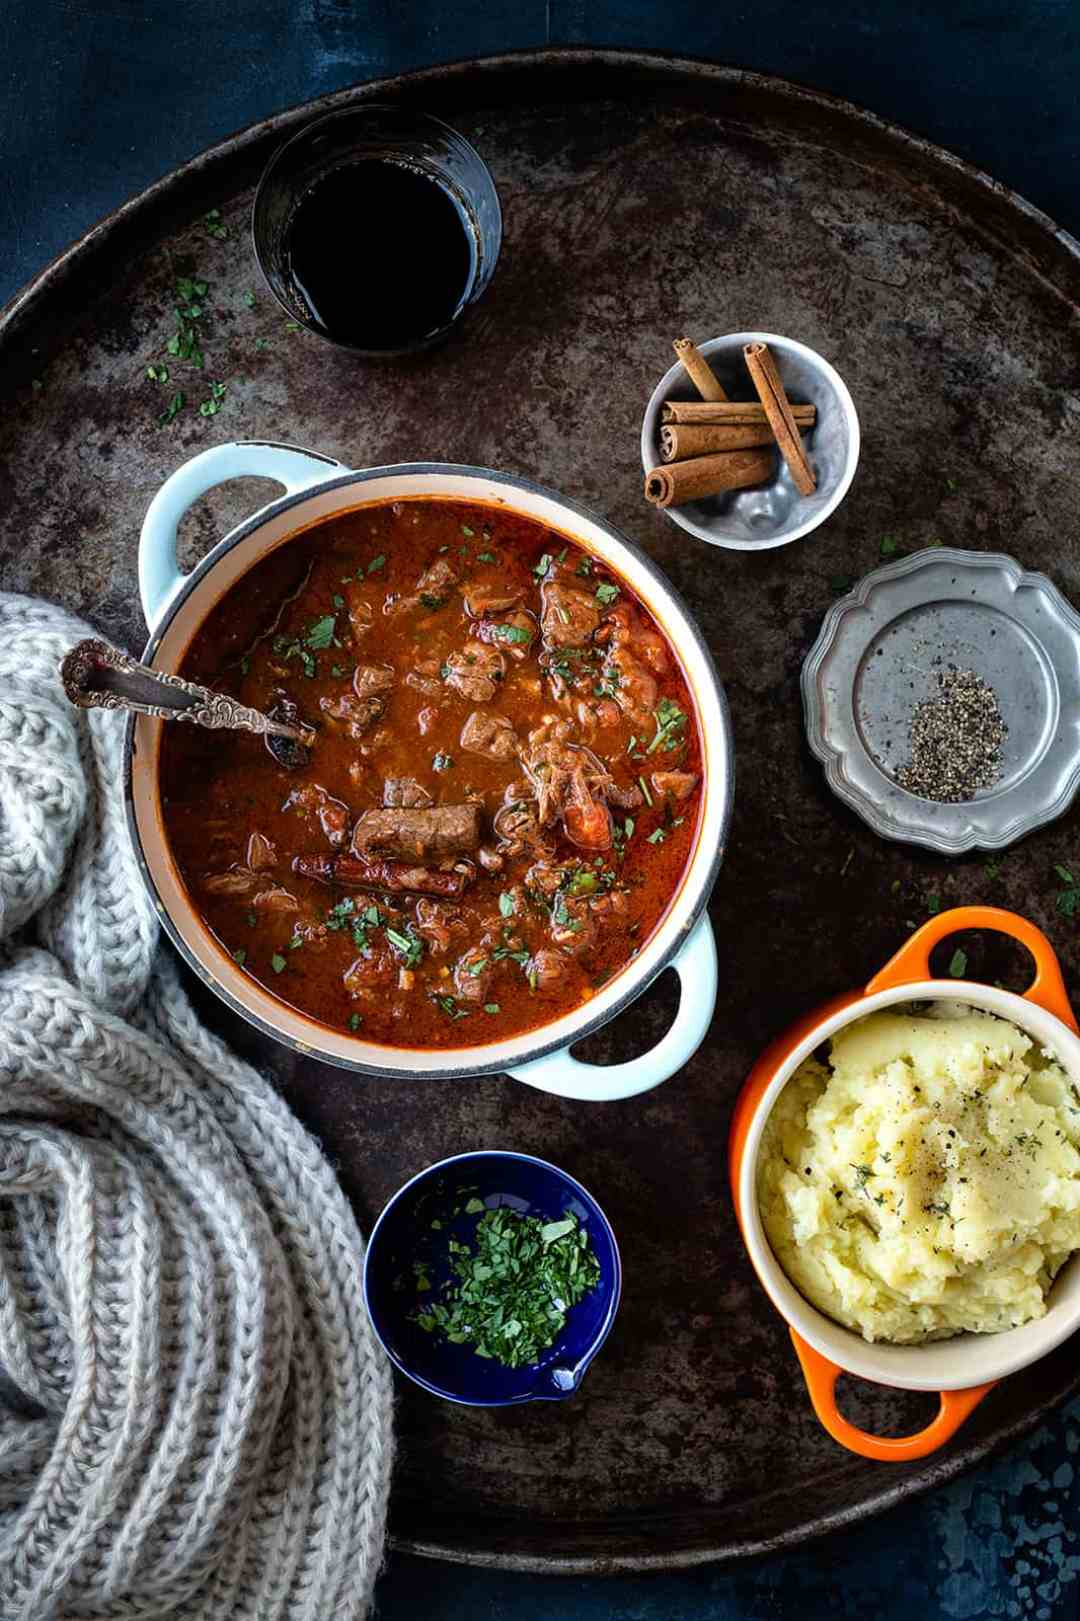 Kokinisto – Greek beef stew in a clay pot with mashed potatoes on the side